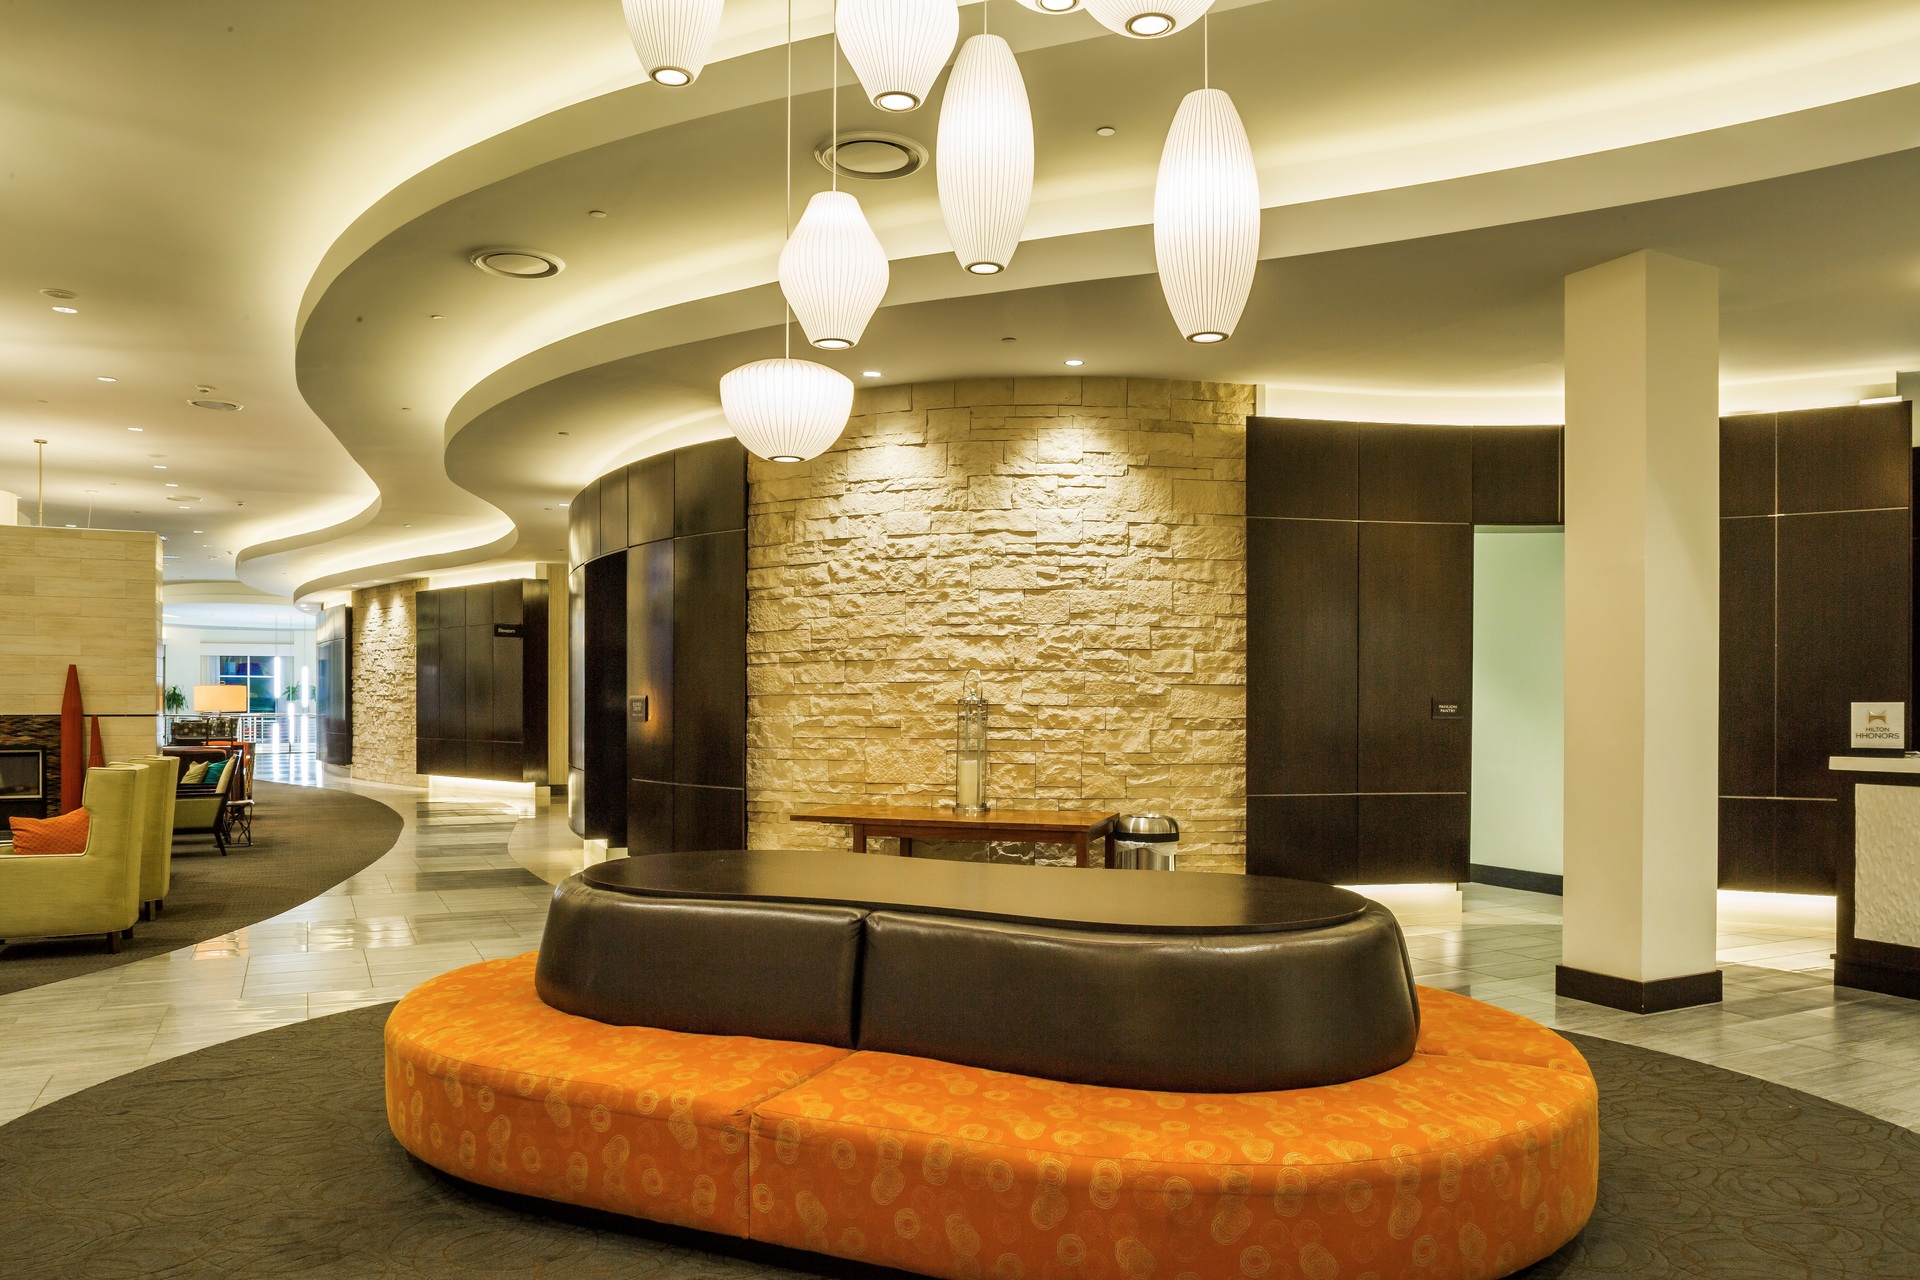 The lobby at the Hilton Garden Inn in Nashville, Tennessee showcases Eldorado Stone's Cut Coarse Stone in Oyster.